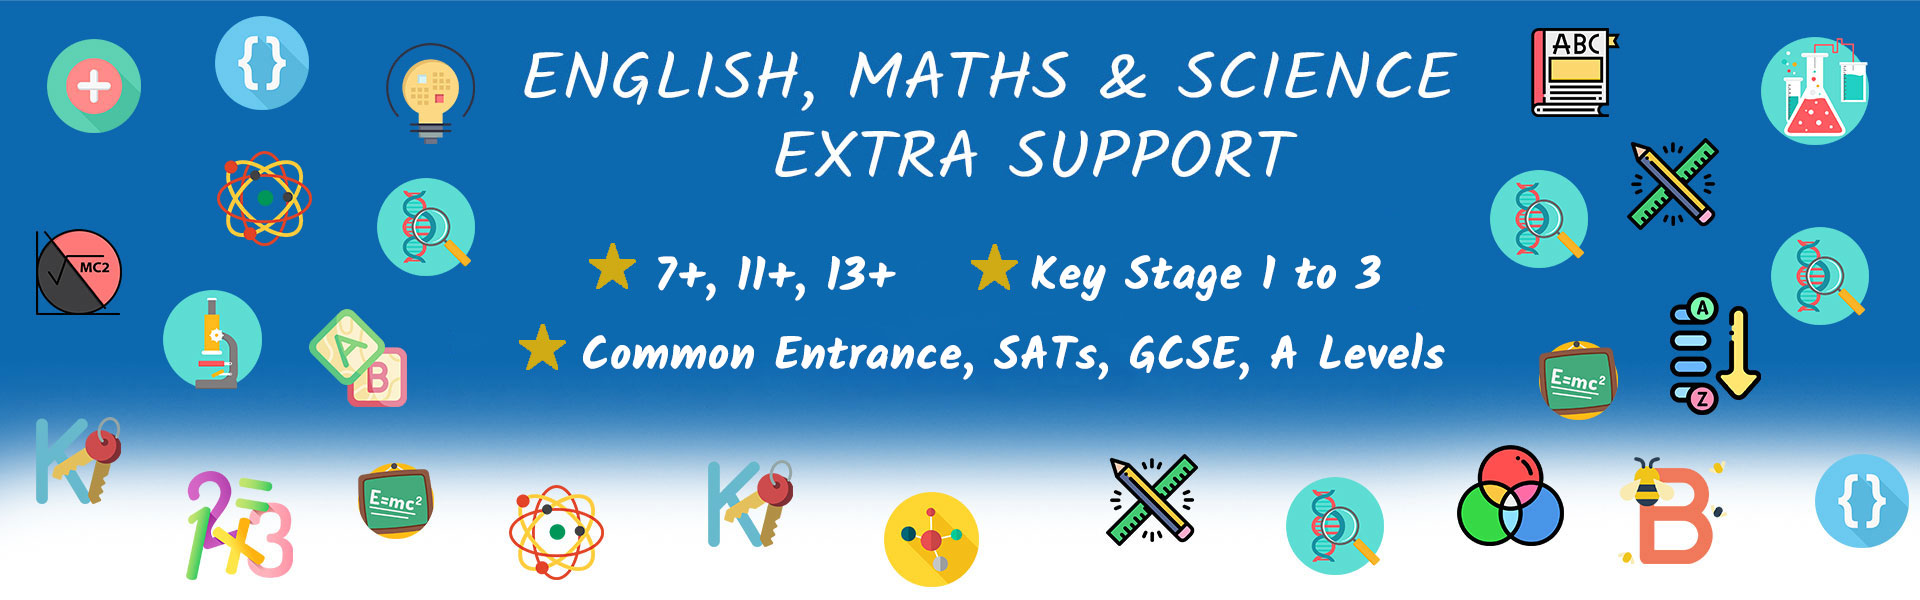 english, maths and science tuition